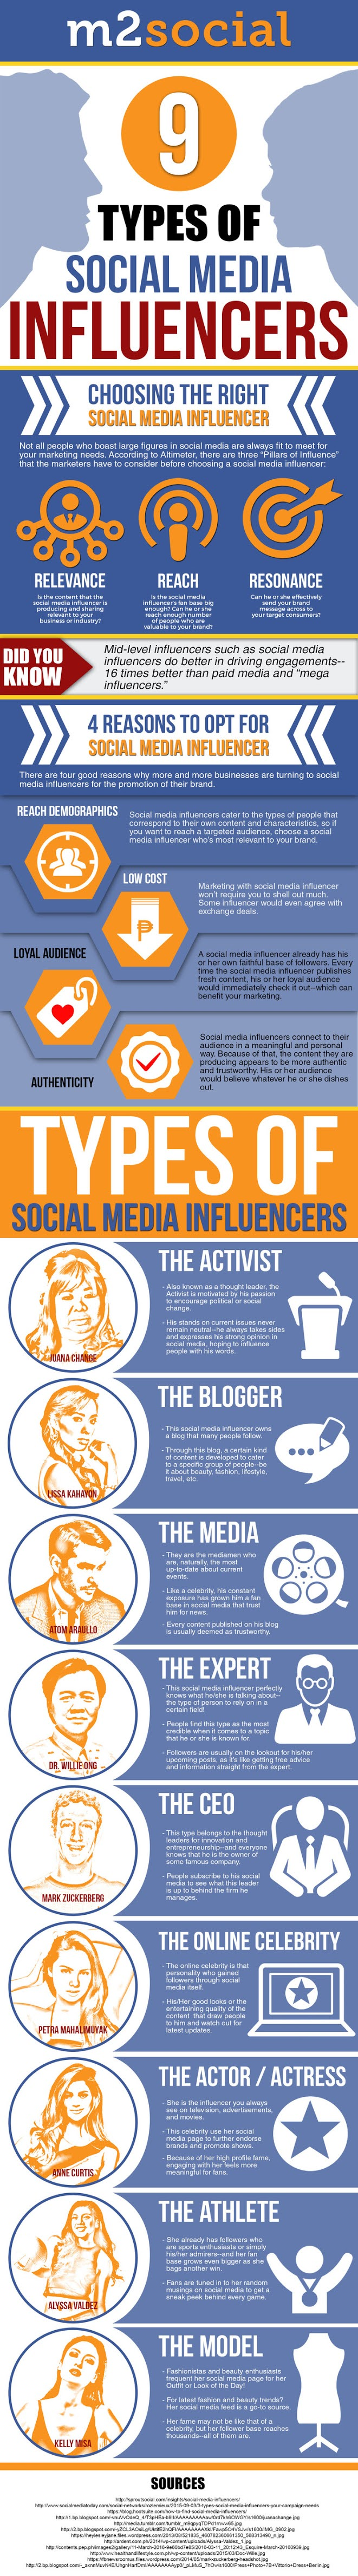 9 Types of Social Media Influencers #infographic